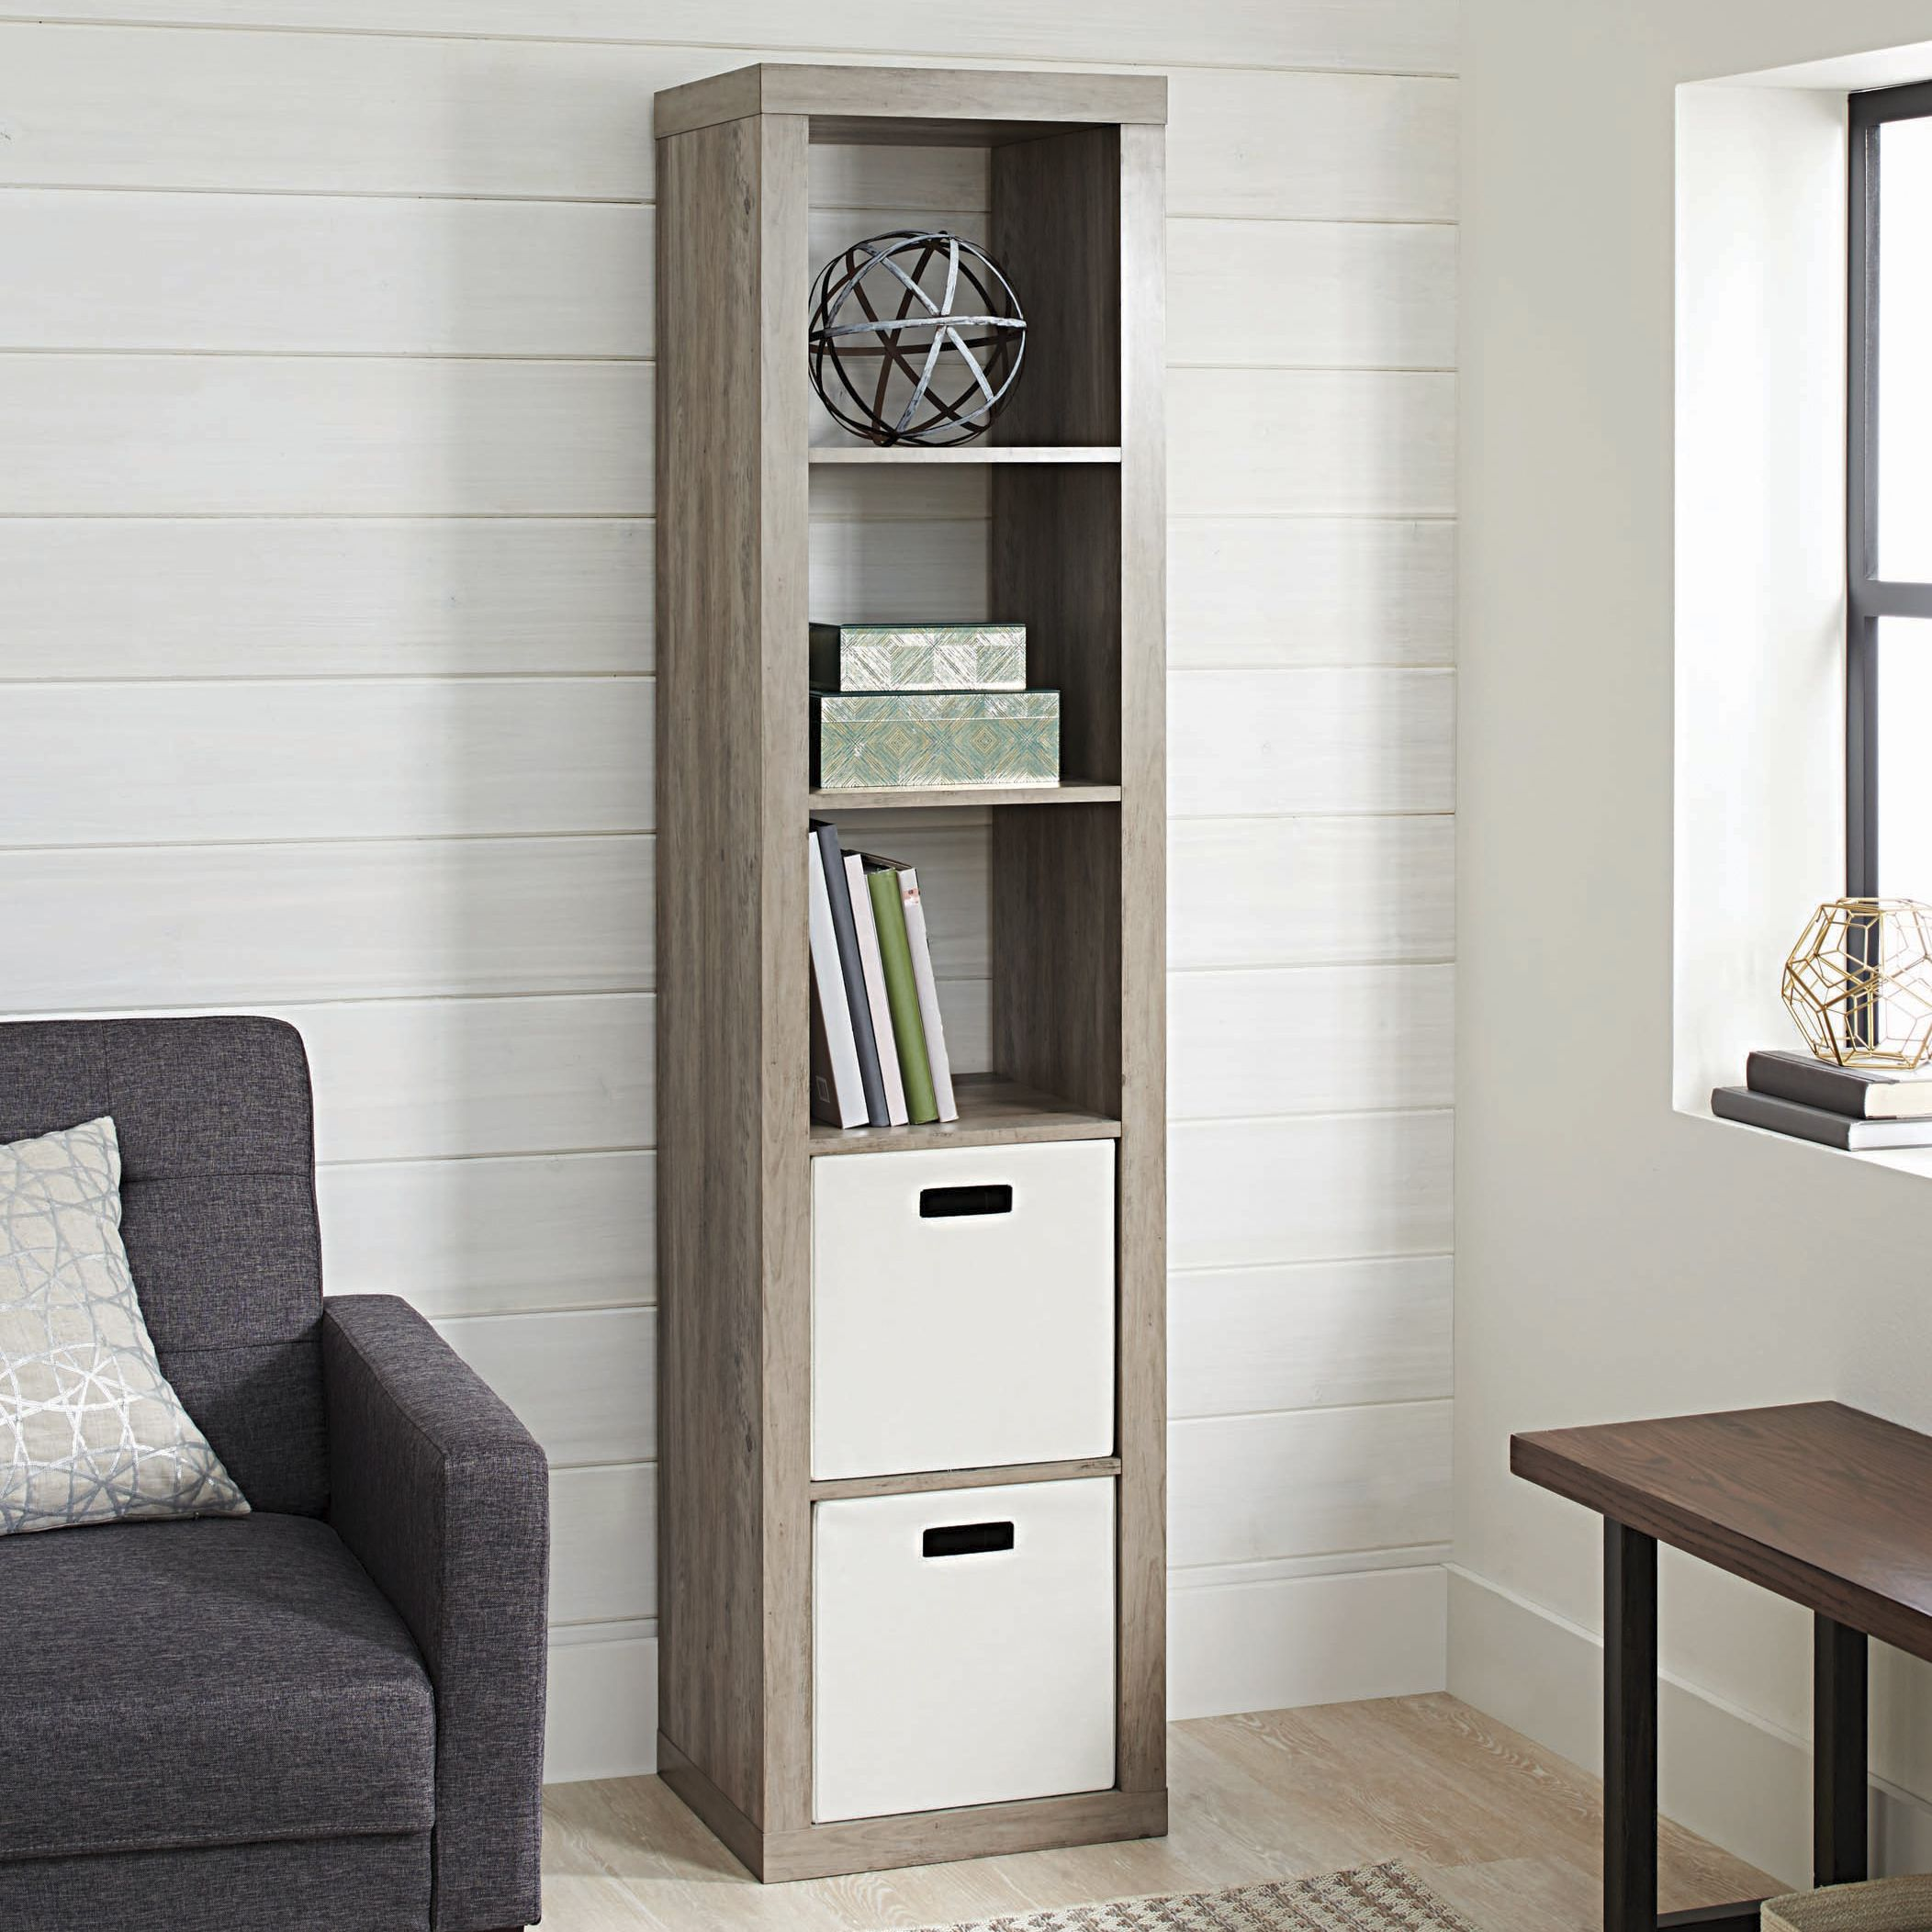 14b1fd7382bac86f8c202d48824f1164 - Better Homes And Gardens 4 Cube Organizer Rustic Gray